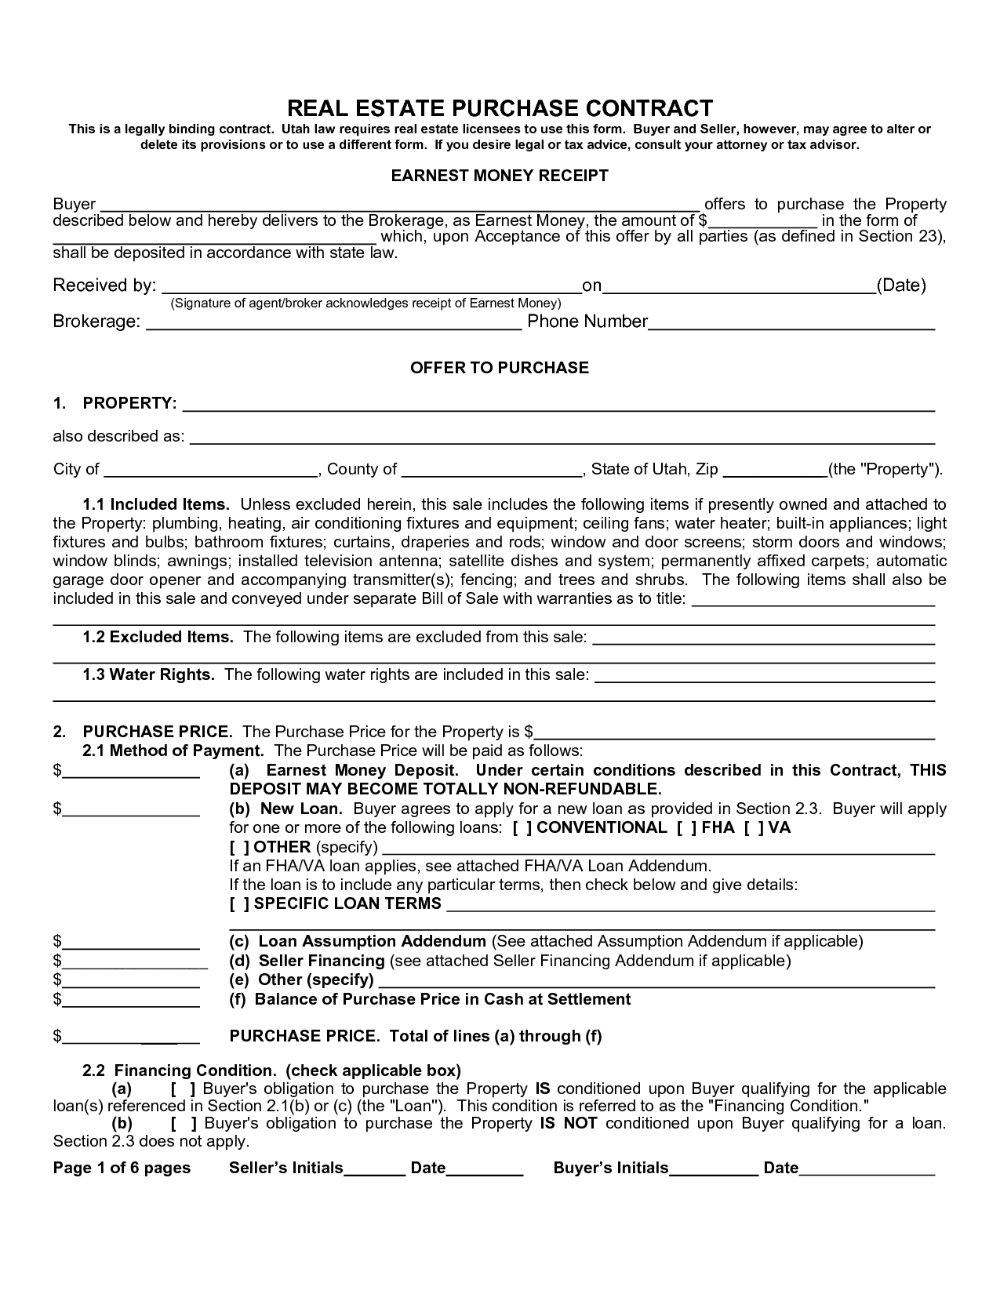 Real Estate Purchase Agreement Form Sample Image Gallery Imggrid Within Home Purchase Agreement Templa Real Estate Contract Purchase Contract Contract Template